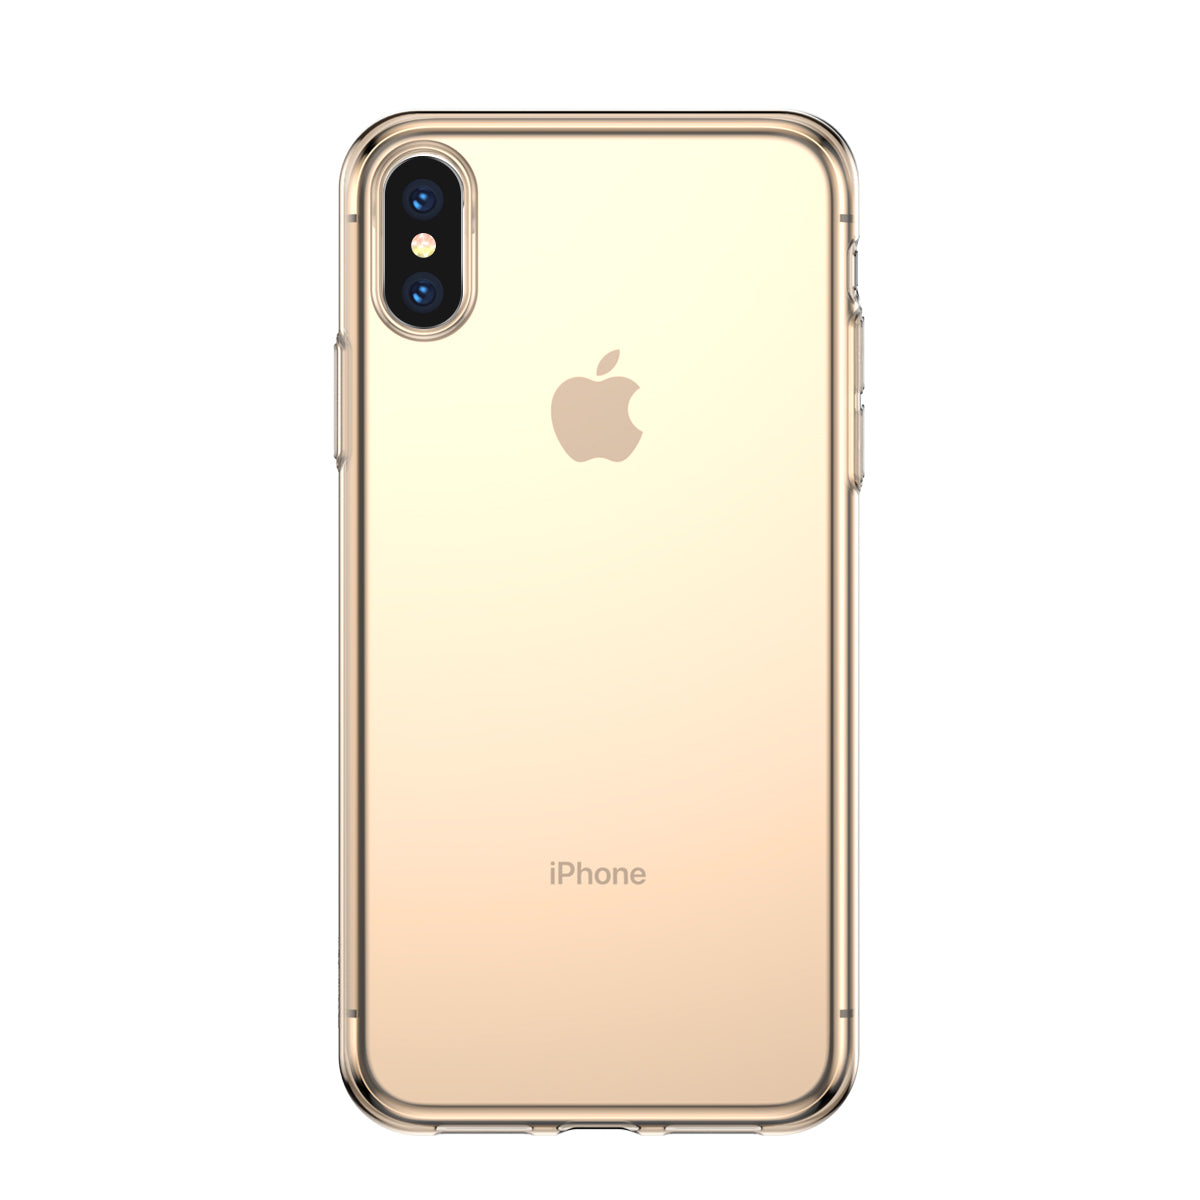 iPhone-XS-Baseus-Simple-Series-Transparent-Gold-Rear_S07WDZ8IQ6V5.jpg